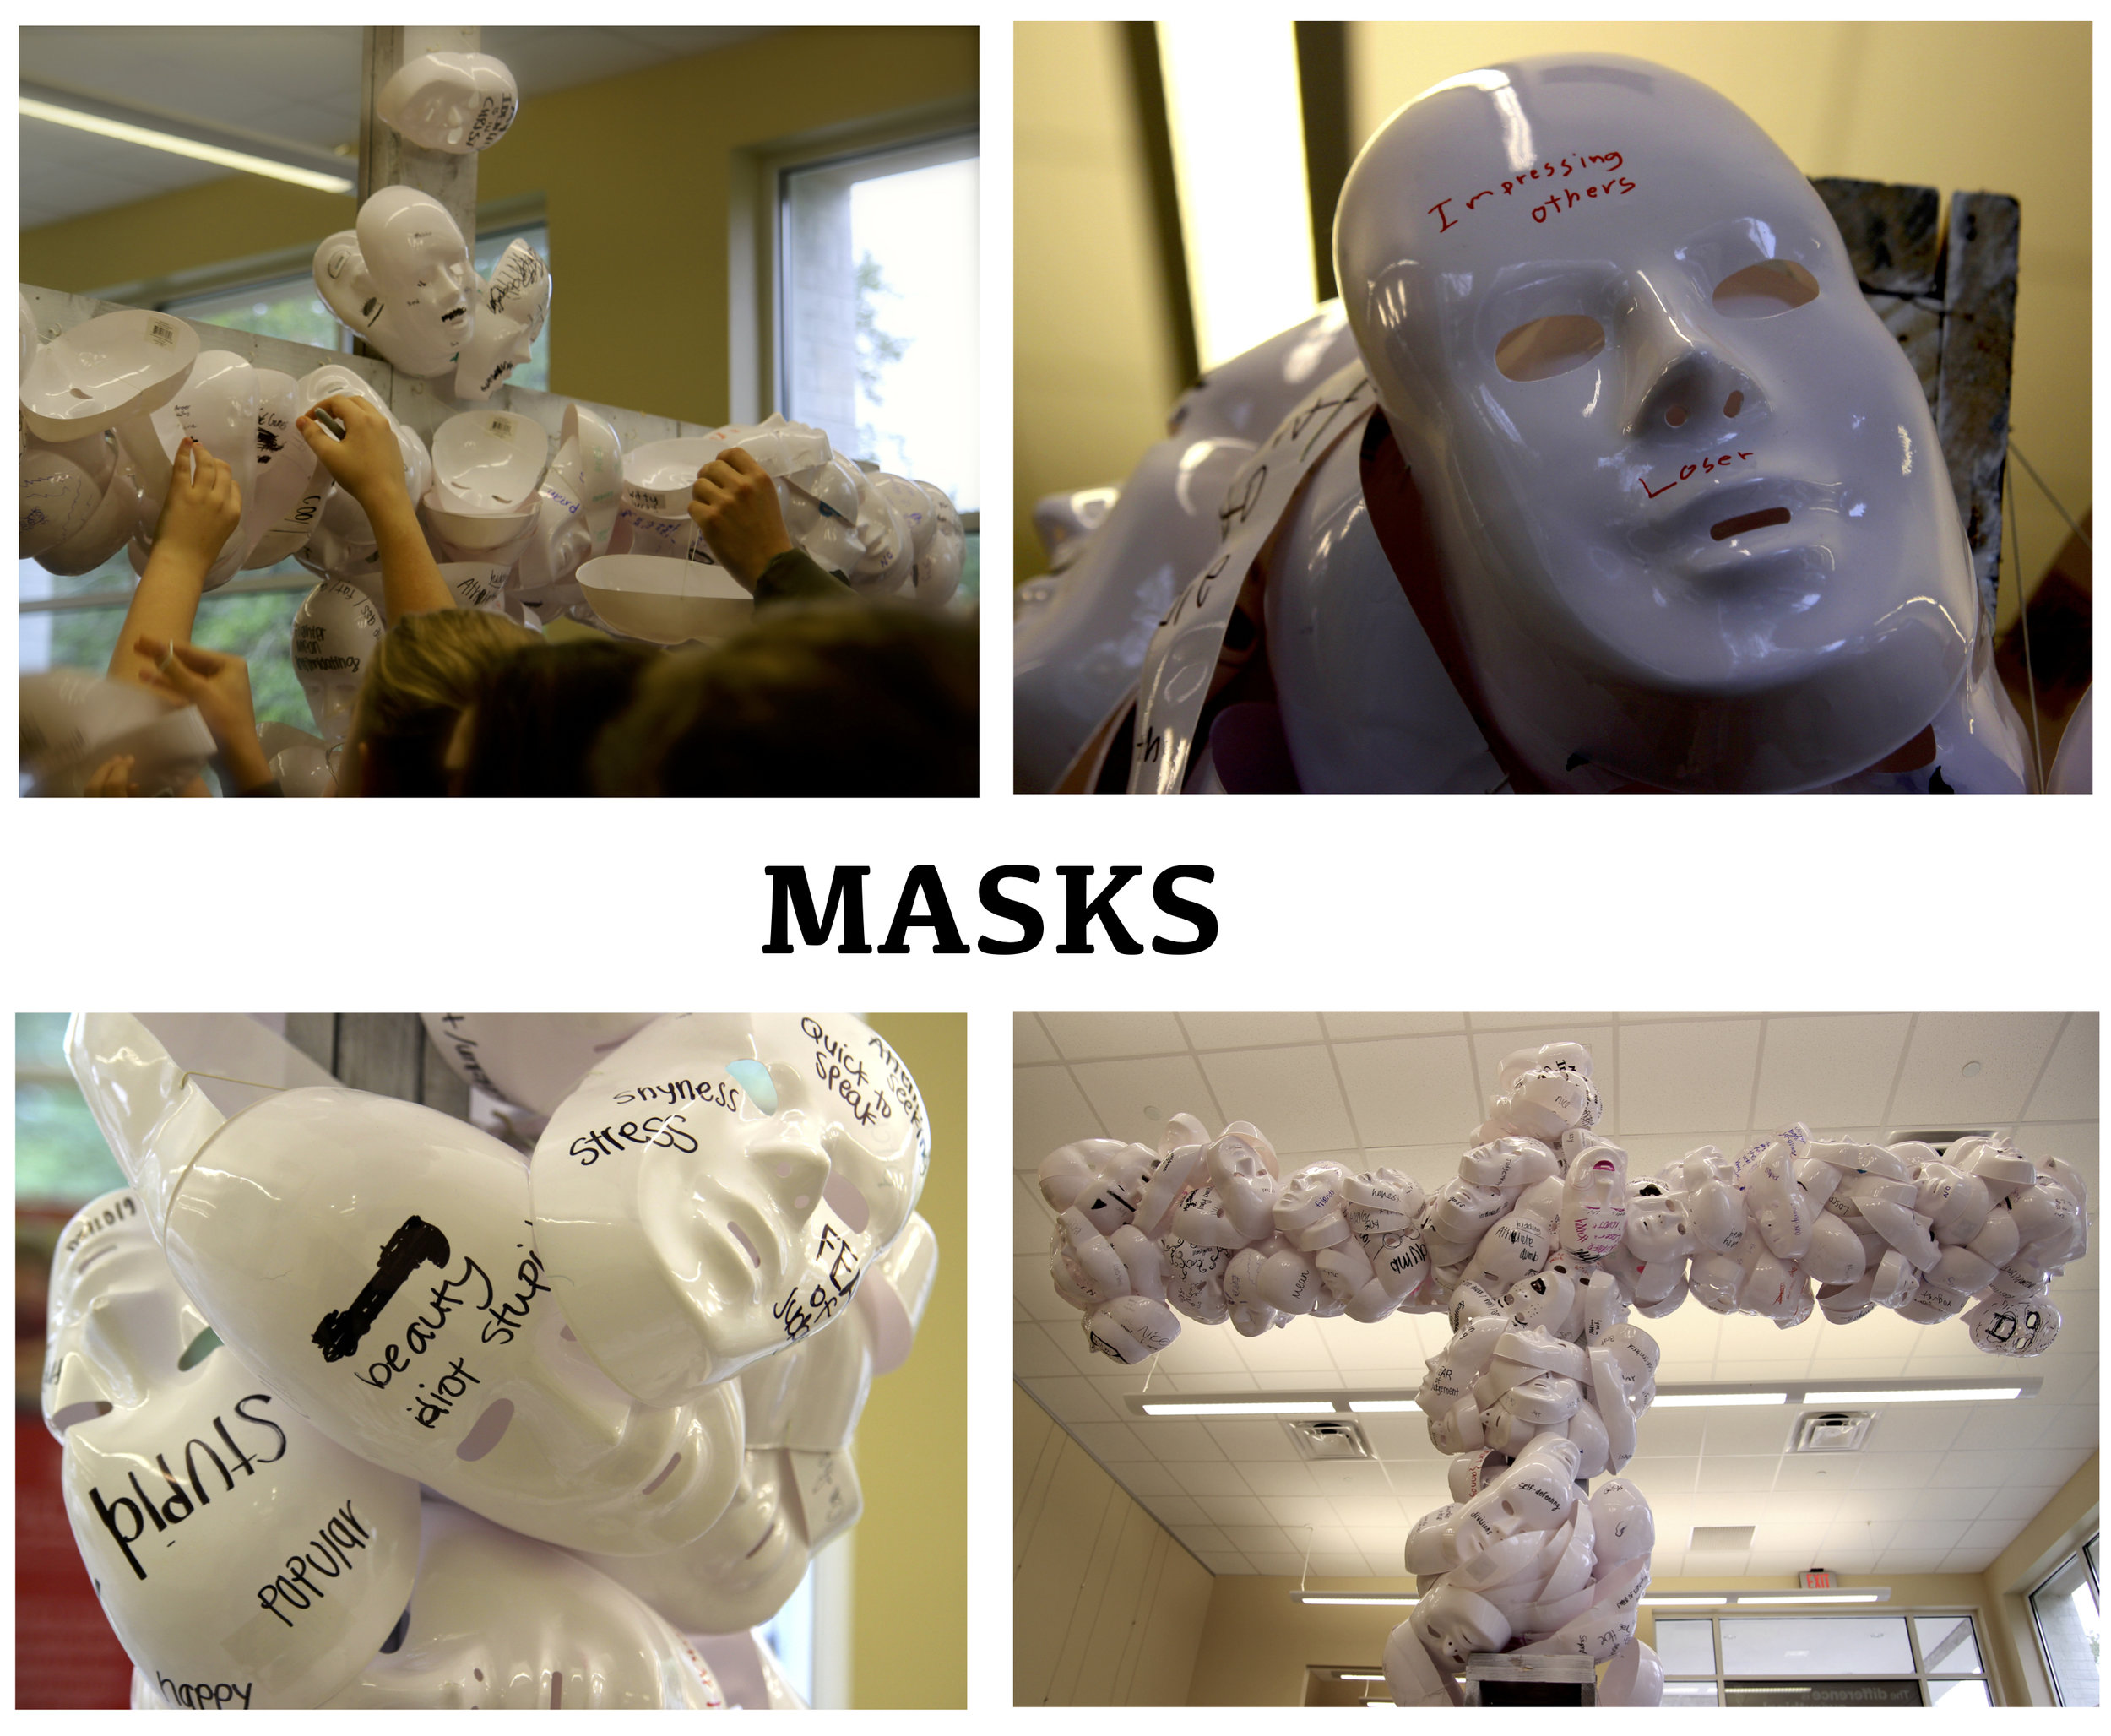 Through a short film participants are introduced to the concepts of school cliques and the masks that teens wear to hide their true identities. Students are then encouraged to write down on their own masks, the labels with which they identify themselves-not only what they hide behind but labels they cast on others. In conclusion, participants are invited to leave their masks on the cross of Christ.